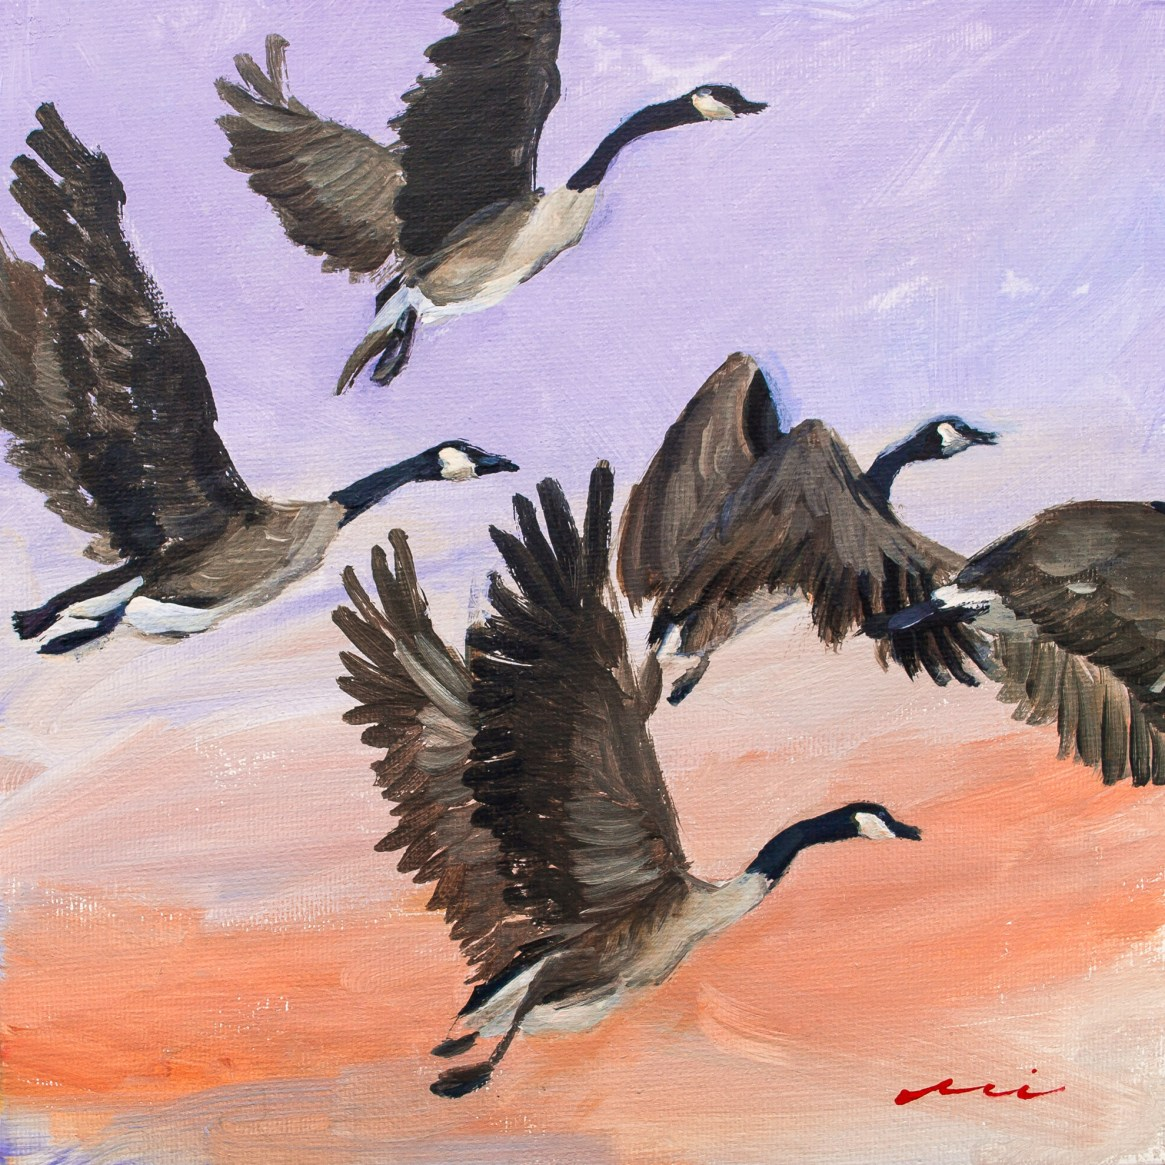 Migrating Geese, 2018